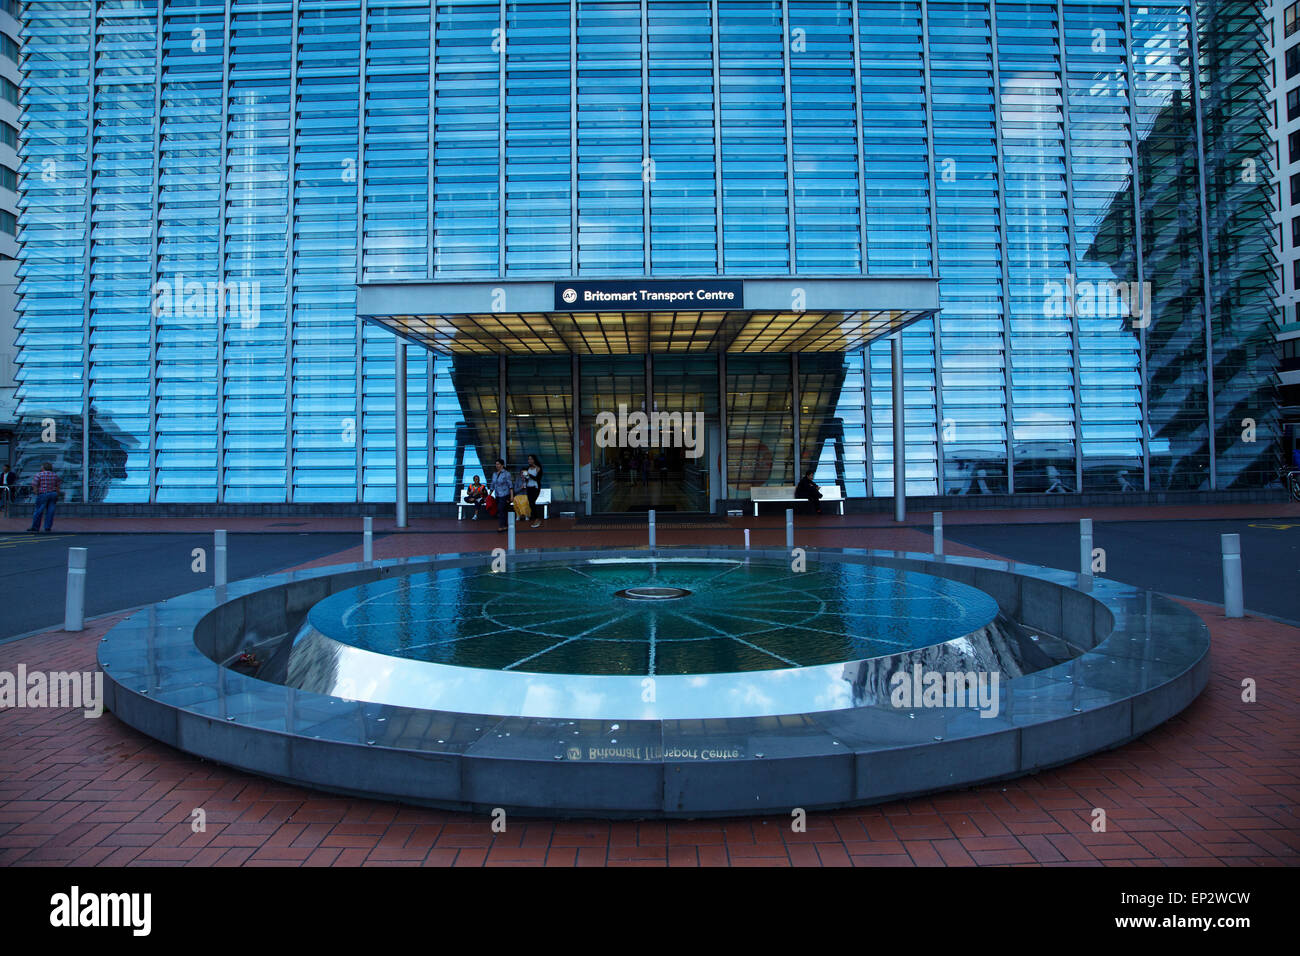 Water fountains auckland - Glass Facade Of Britomart Transport Centre And Water Feature Auckland Cbd North Island New Zealand